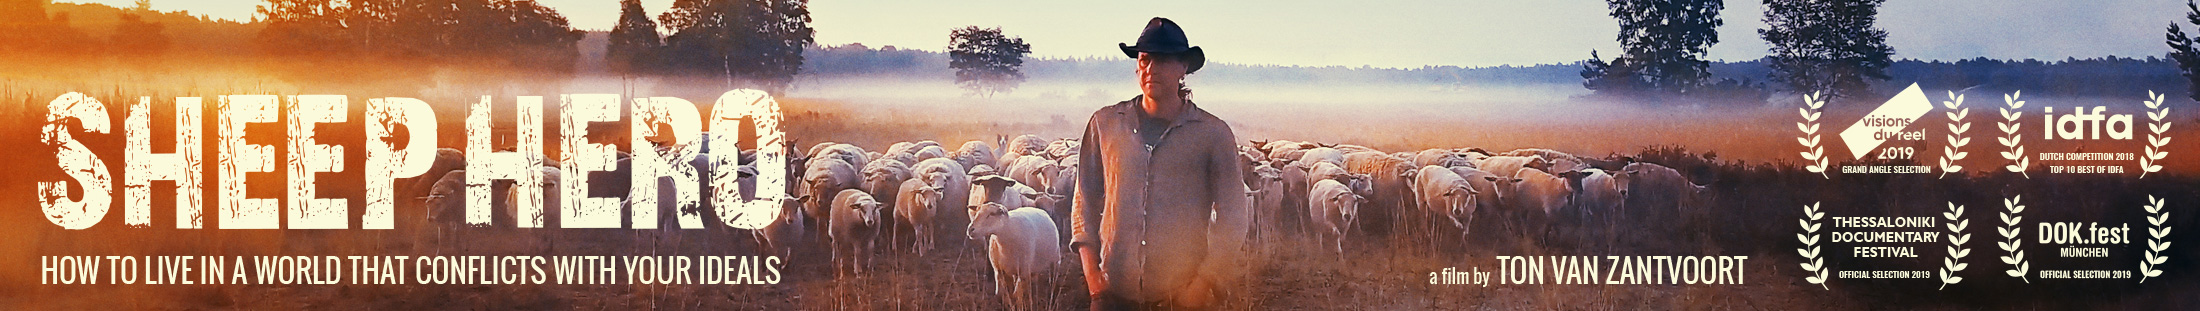 SHEEP HERO documentary Top 10 best of IDFA